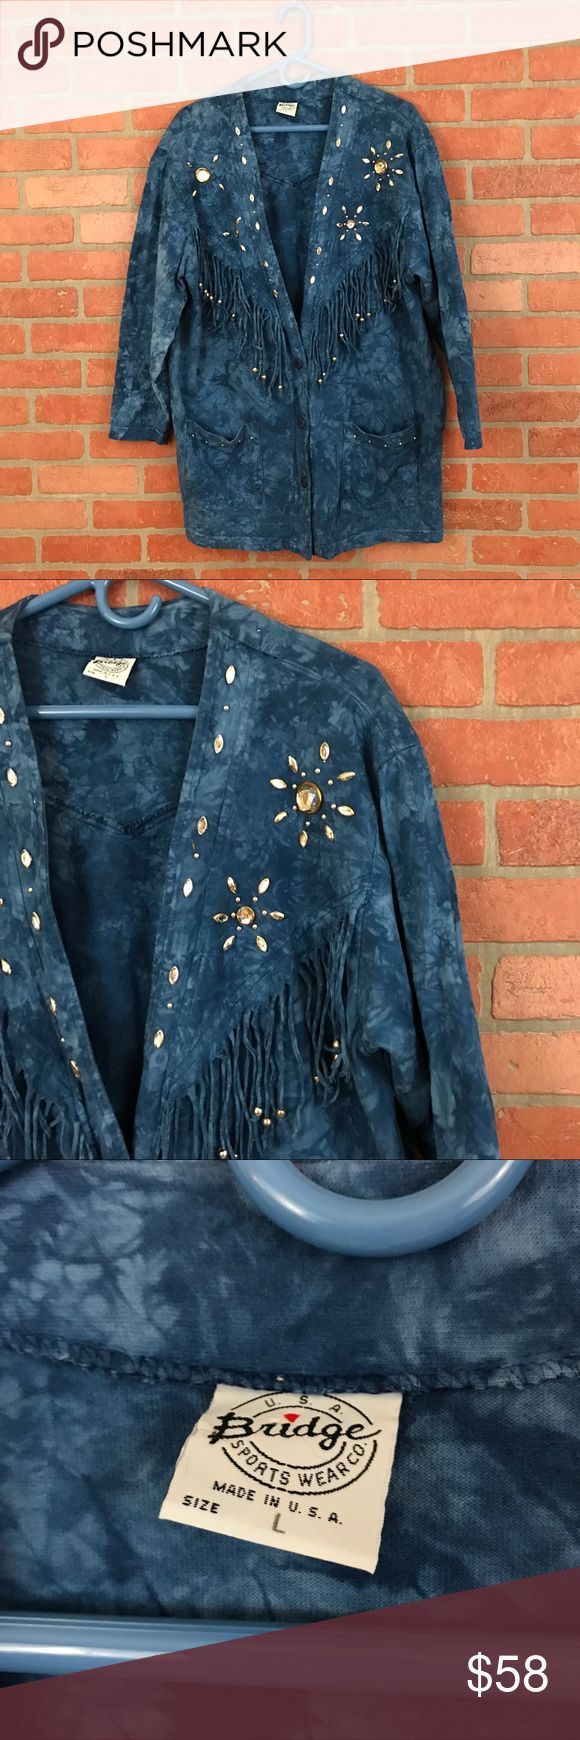 """Vintage 80's/90's Cardigan tie dye fringe L, 228 This amazing blue tie dye knit cardigan feels like it's made of t-shirt fabric and has the best fringe and embellishments! It's bedazzled down the front and has beaded fringe on the back on a v-shape.  This was made in the USA and is vintage from the late 80's early 90's.  In good condition with a couple beads missing.  It's a size L and measures 250 flat across the bust and 31"""" long. Vintage Sweaters Cardigans"""